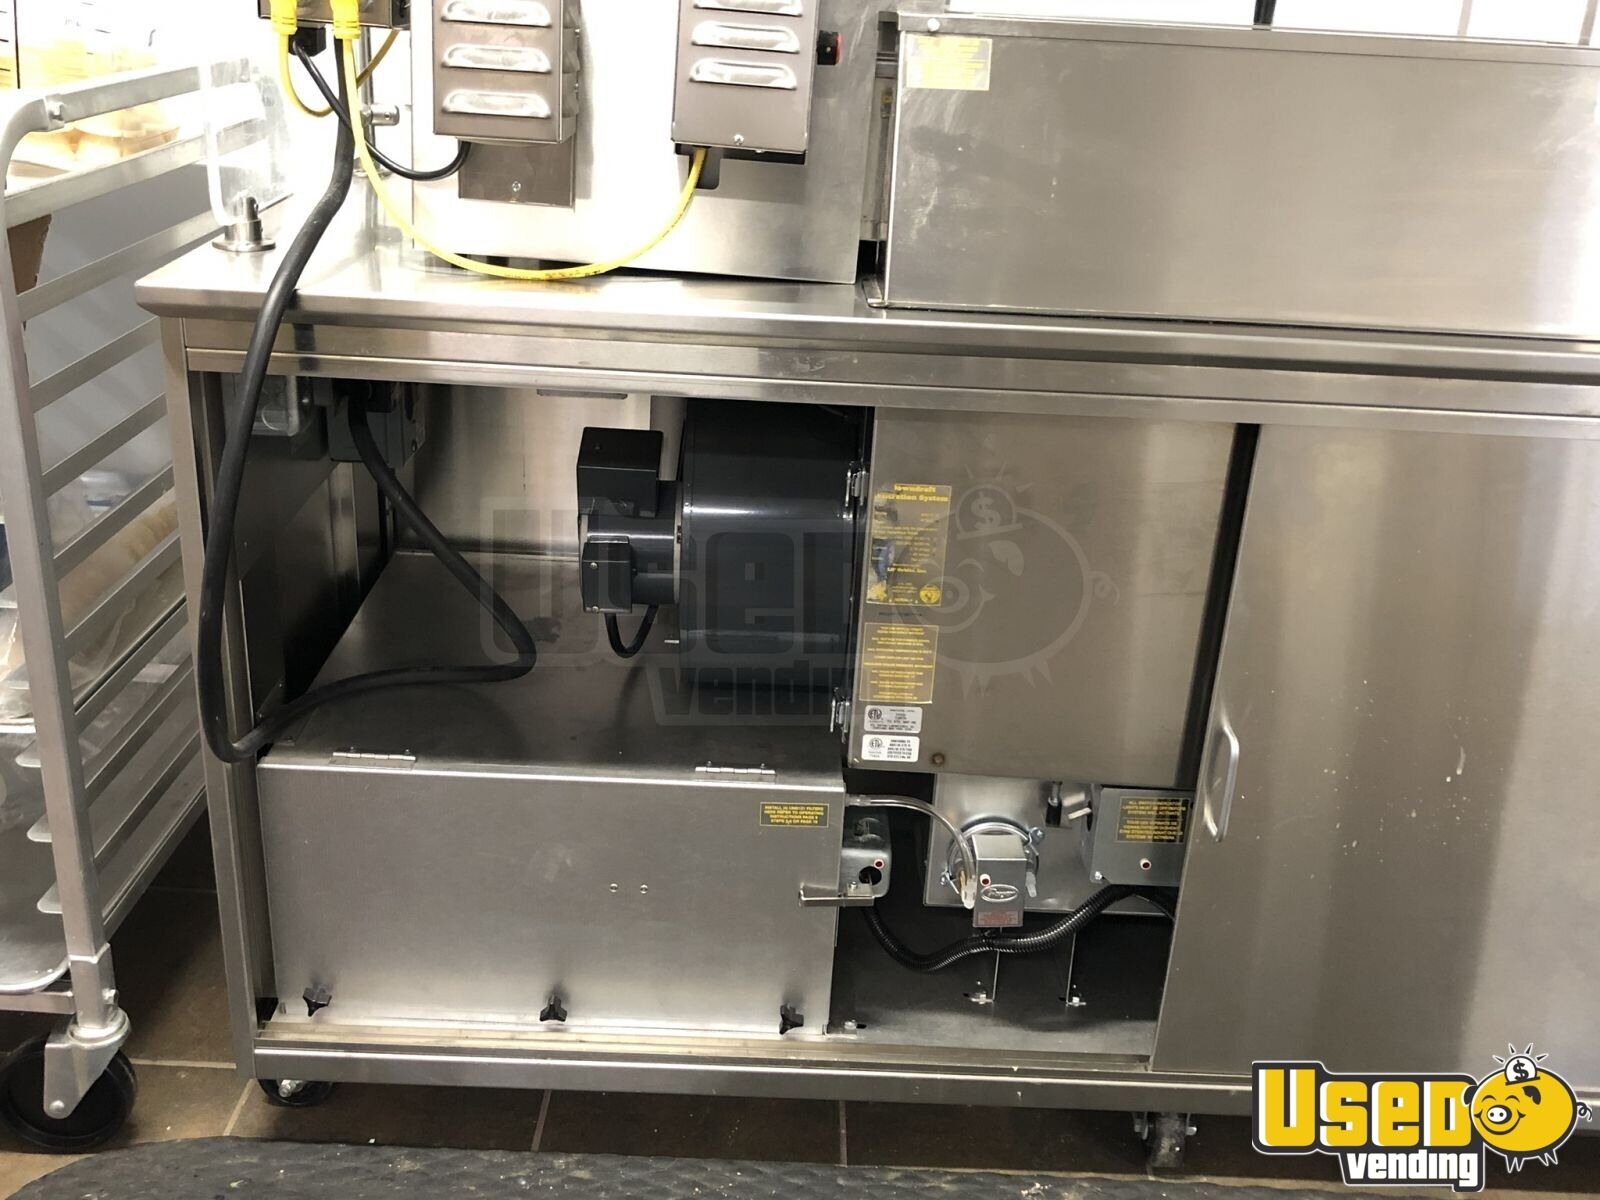 2017 Lil Orbits Ss2400 With Advanced Filtration Cabinet Cart 3 Wisconsin for Sale - 3